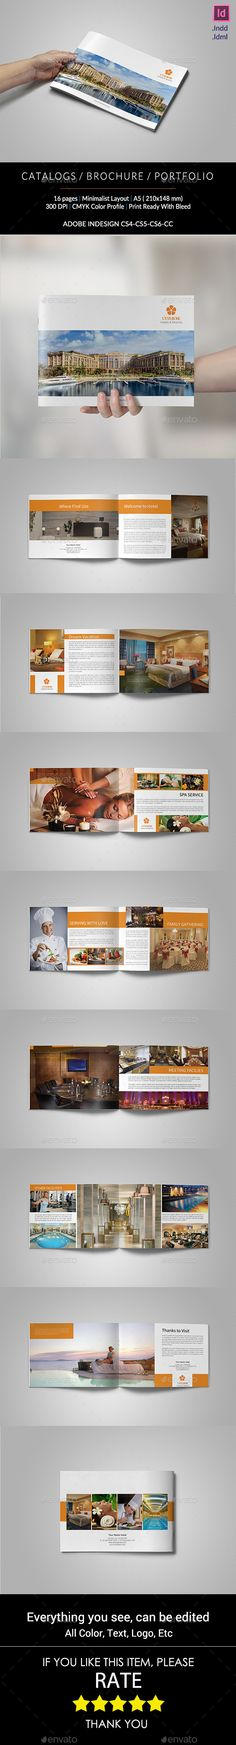 72 best hotel brochure images on pinterest page layout editorial